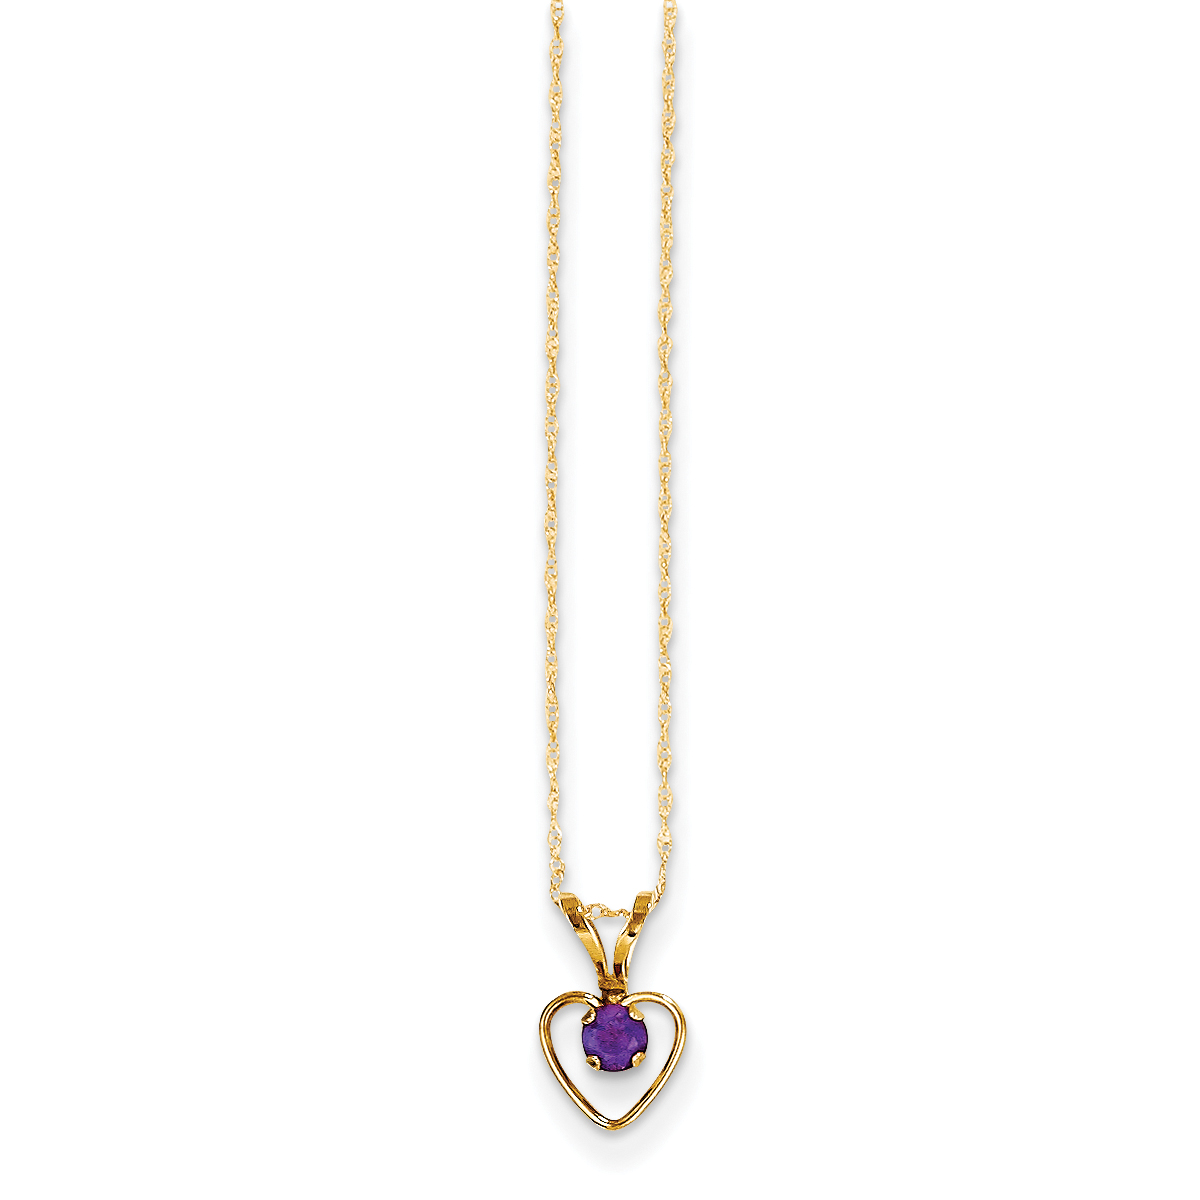 14K Yellow Gold Madi K 3mm Amethyst Heart Birthstone Necklace 15 Inch - image 1 of 1